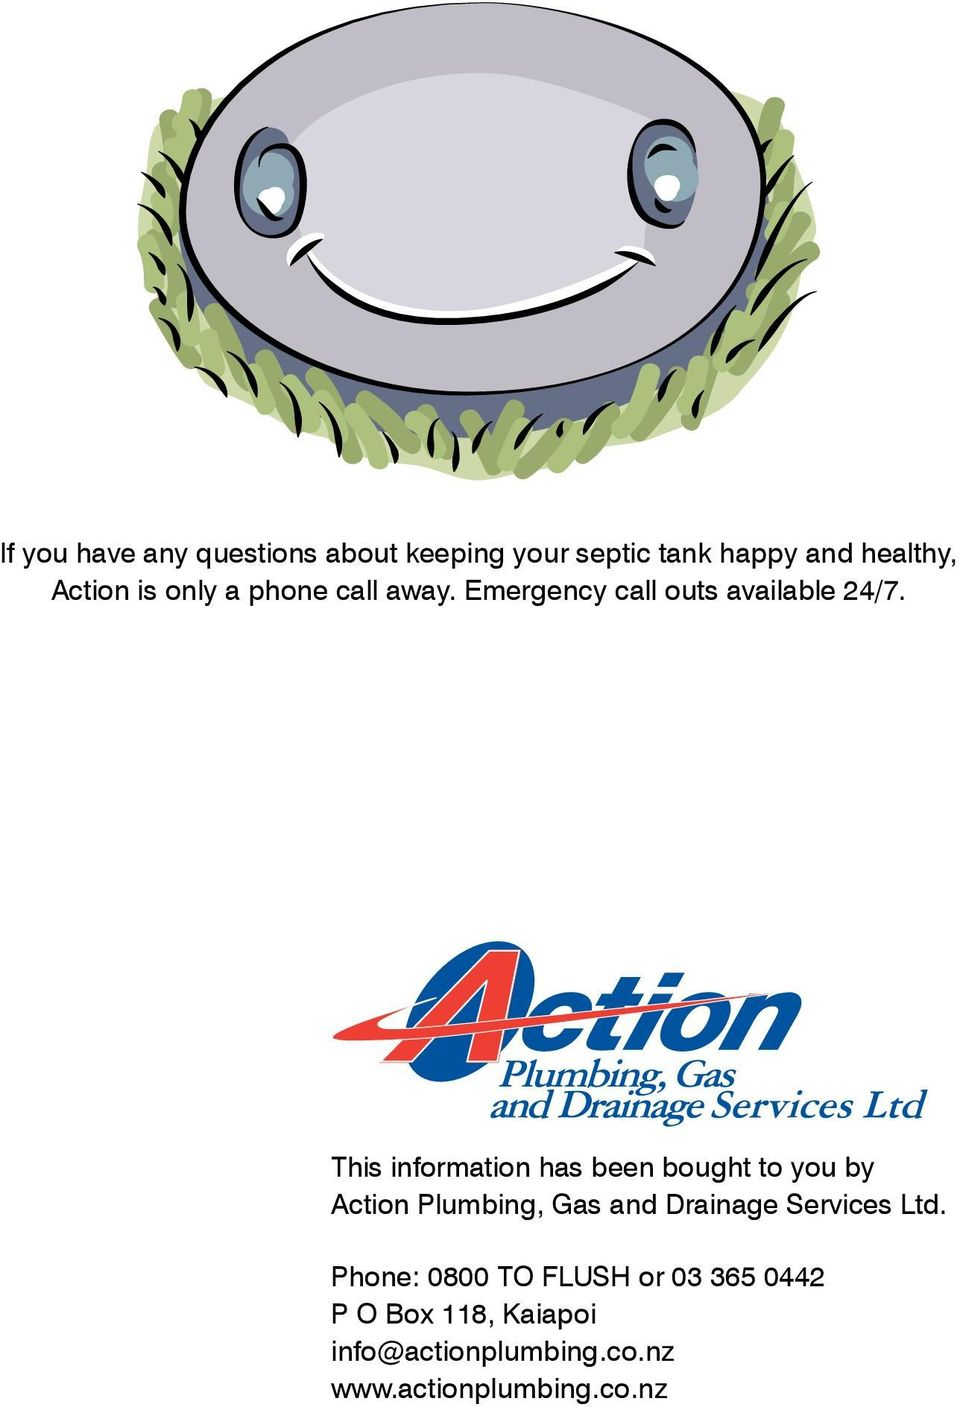 This information has been bought to you by Action Plumbing, Gas and Drainage Services Ltd.